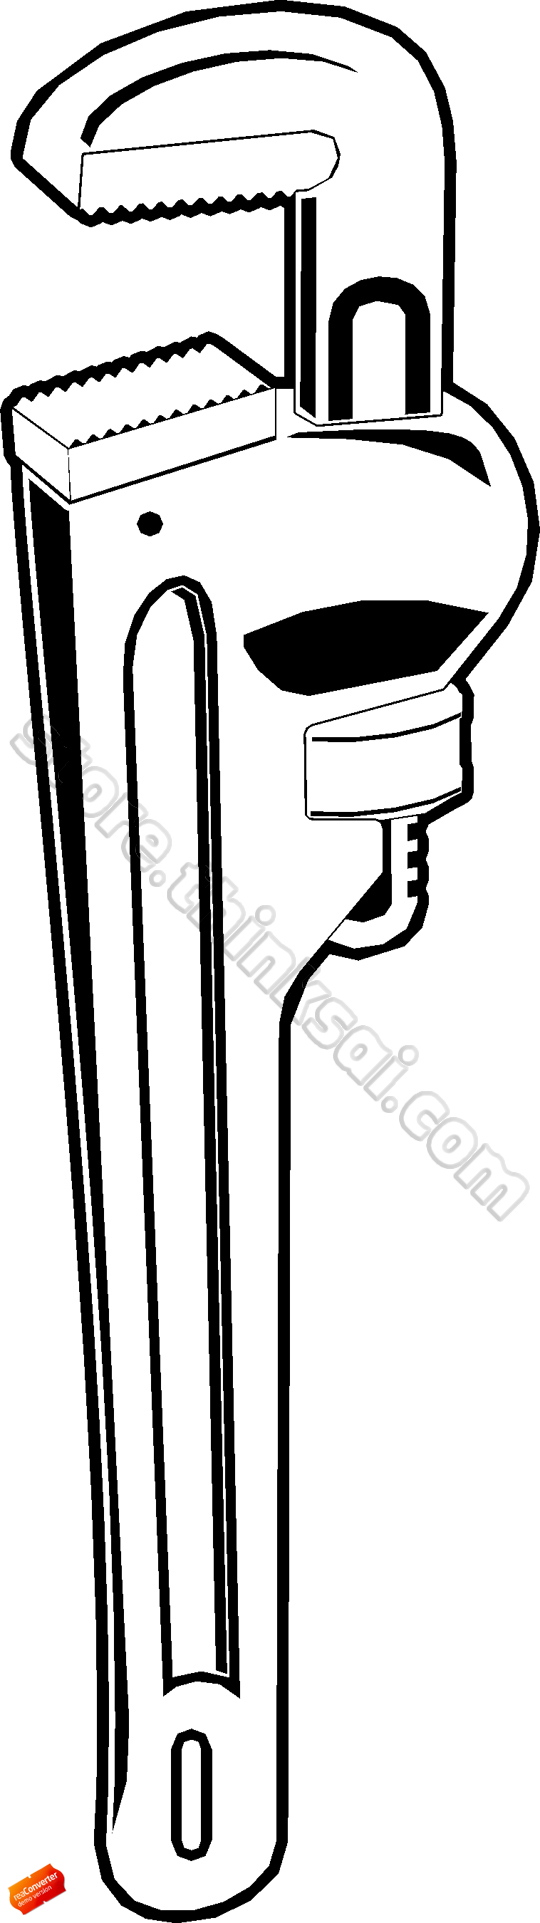 Plumbing wrench clipart suggest